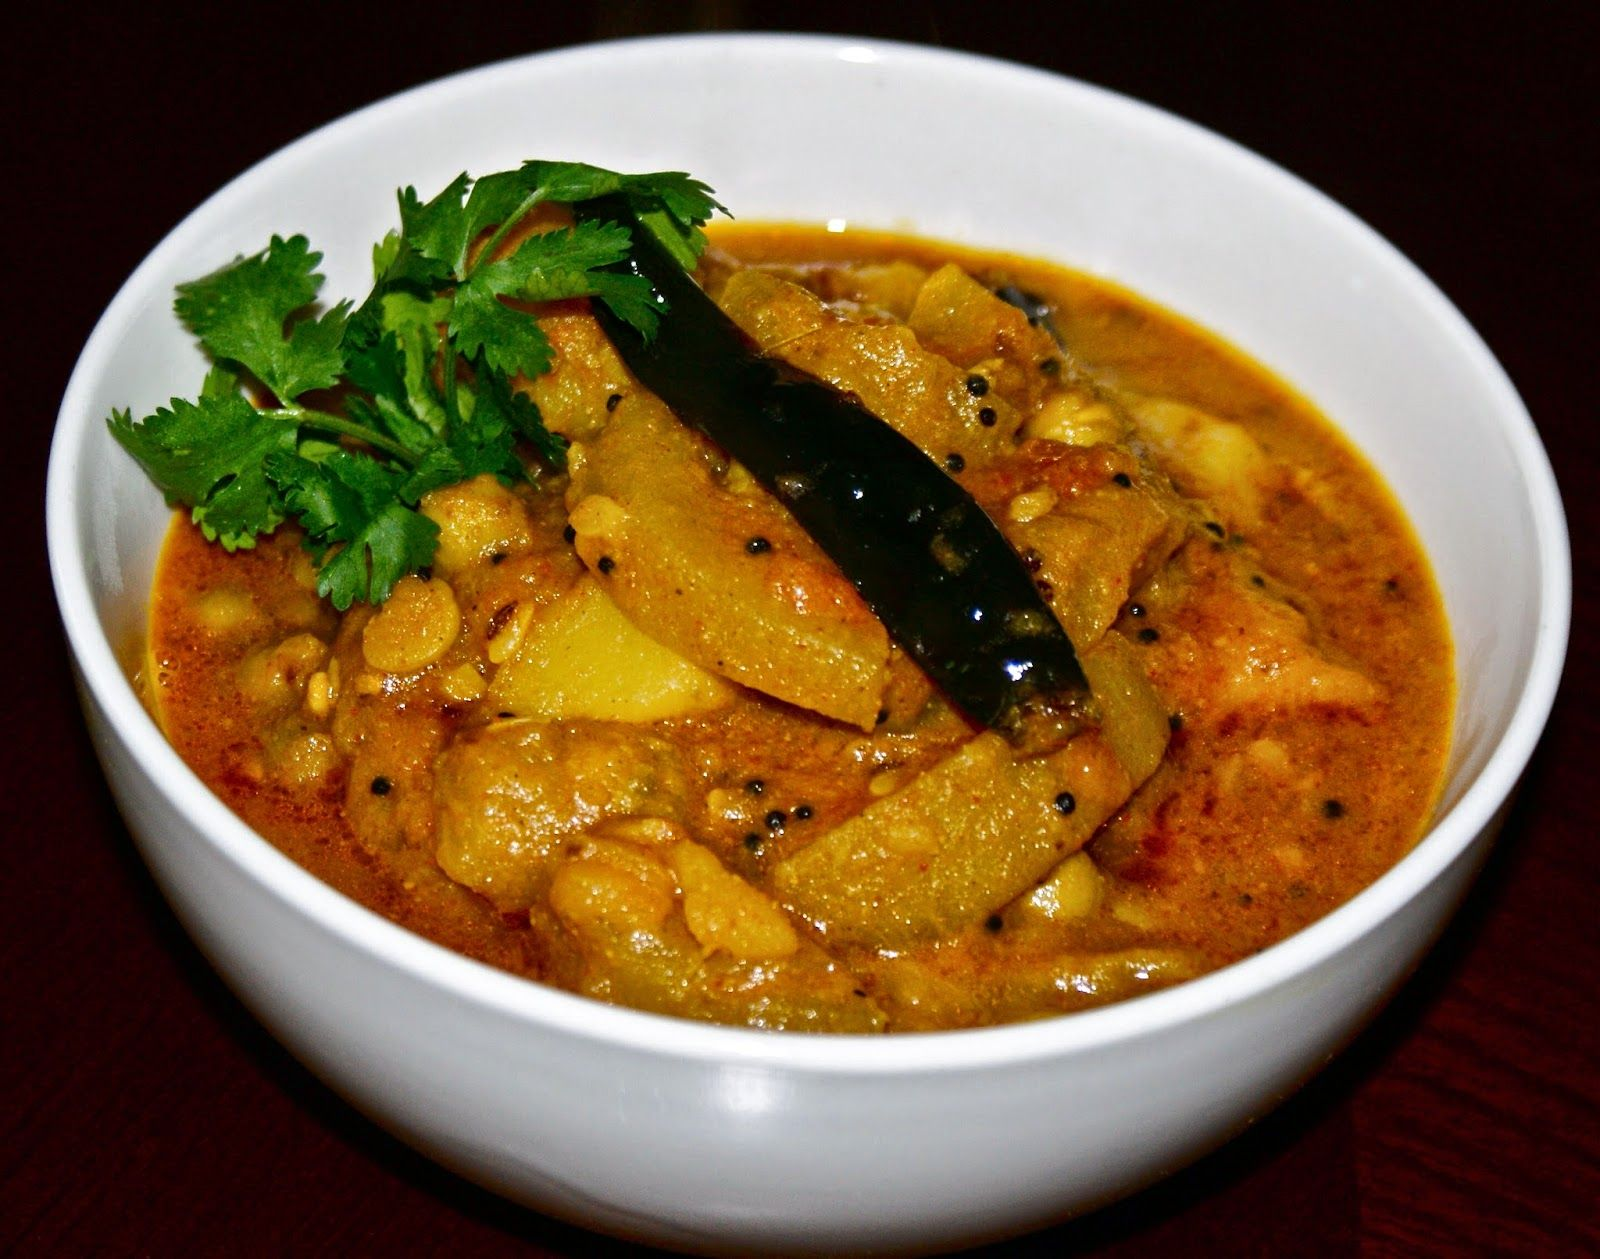 Lauka calabashopo squash potato curry recipenepali tummy lauka calabashopo squash potato curry recipenepali tummy forumfinder Choice Image